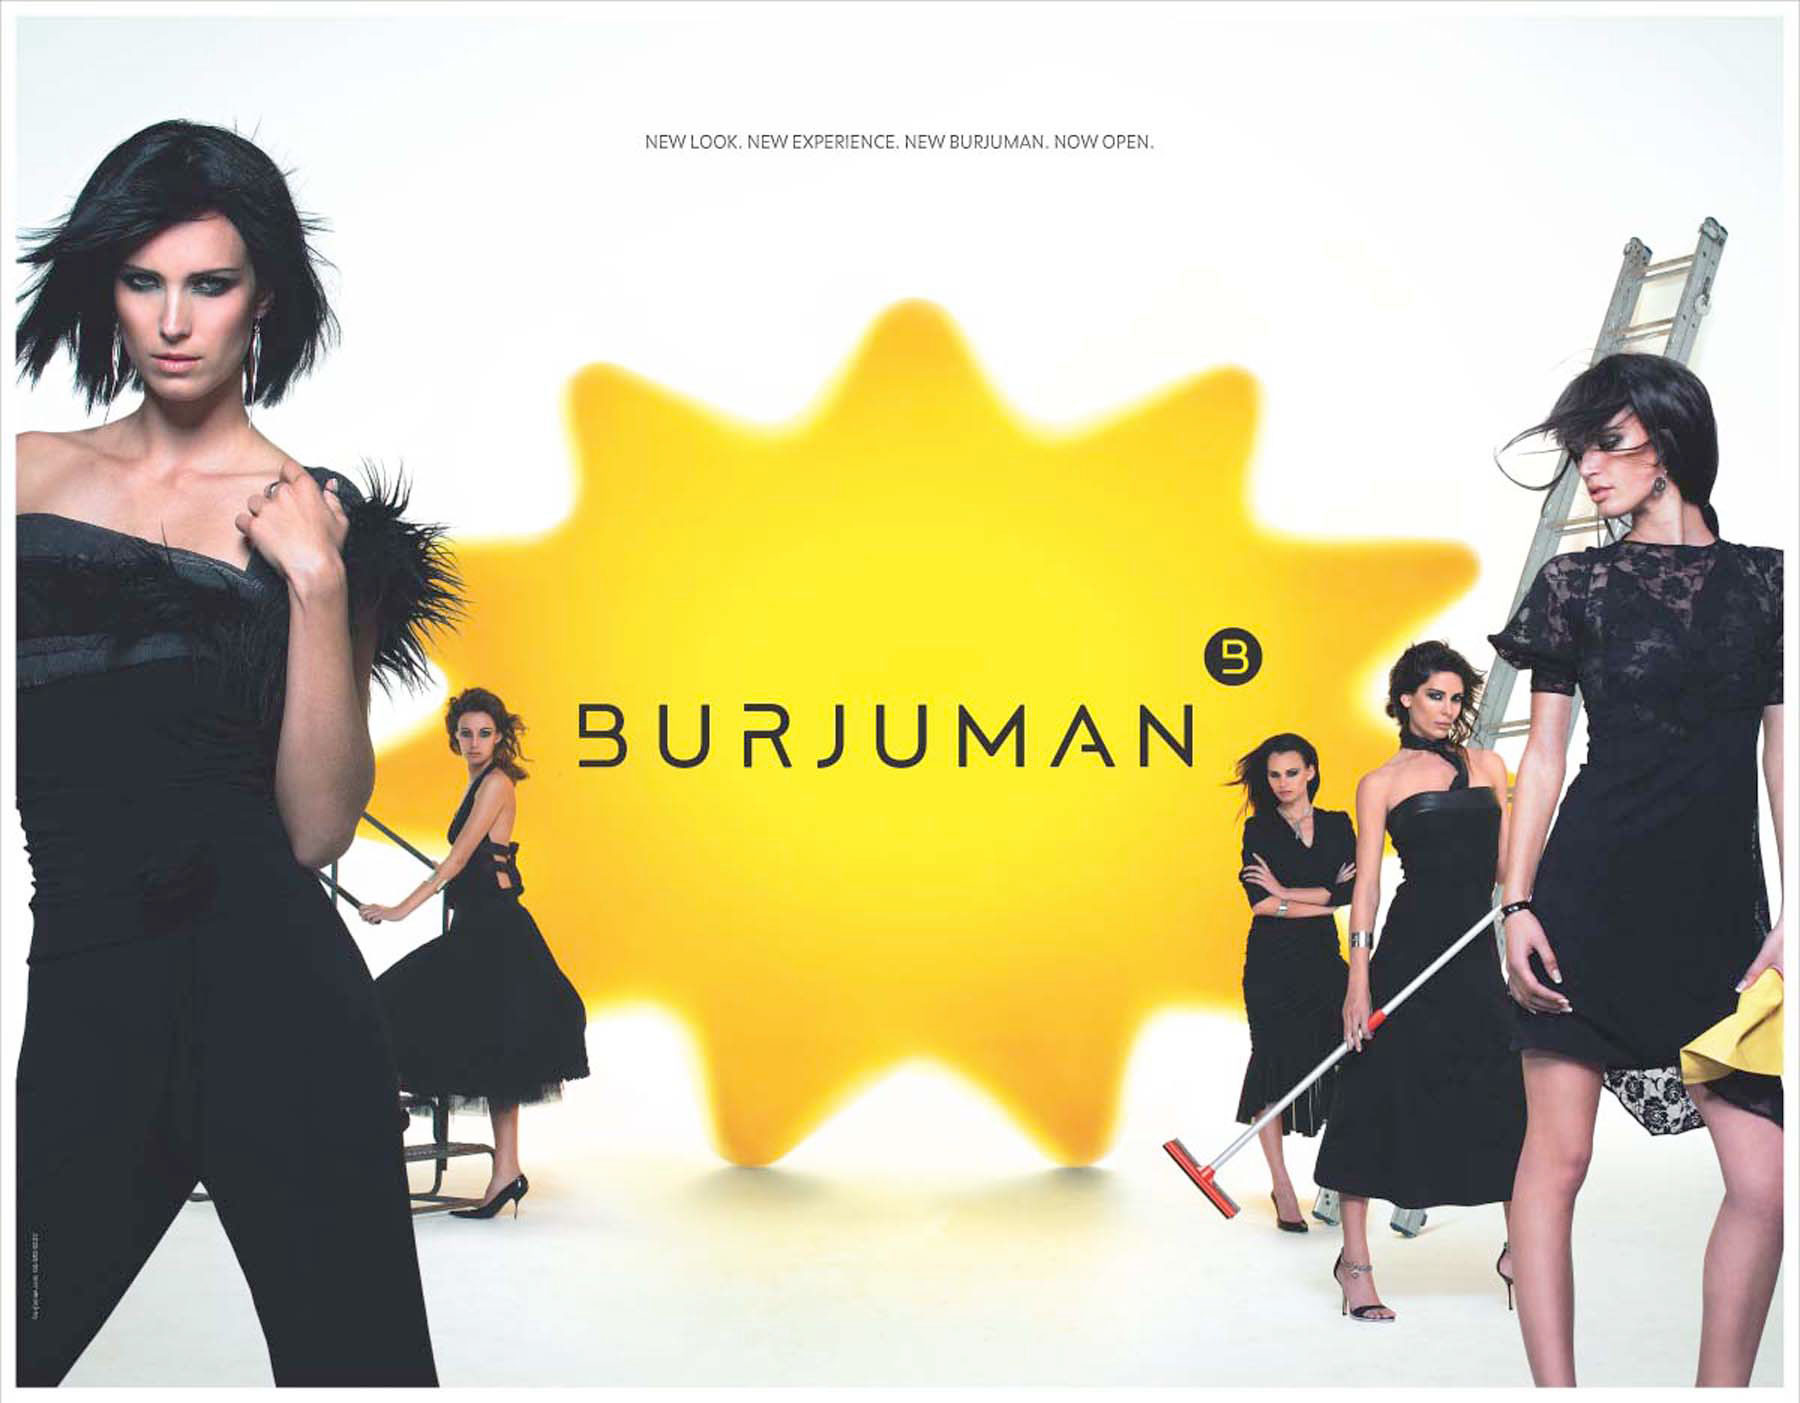 NEW-BurJuman-Kenny-Campaign-Launch-Ad-Reveal-DPS-Open.jpg